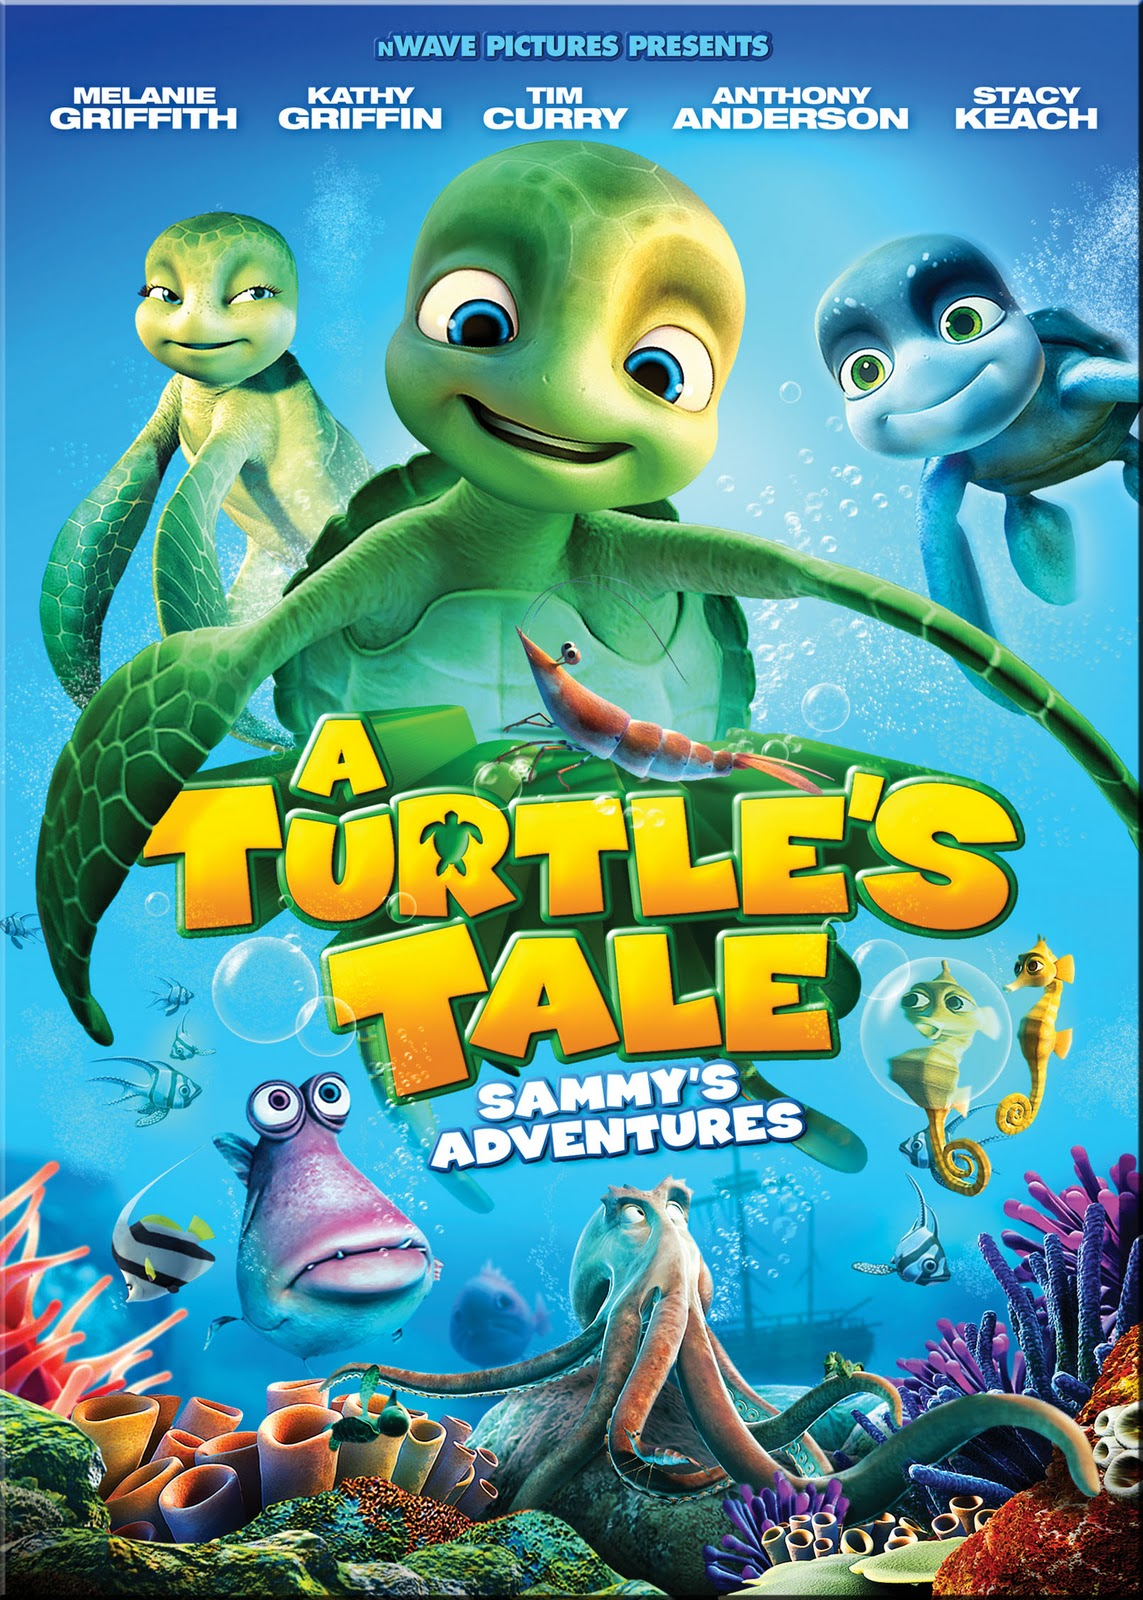 Maria S Space A Turtles Tale Sammy S Adventures